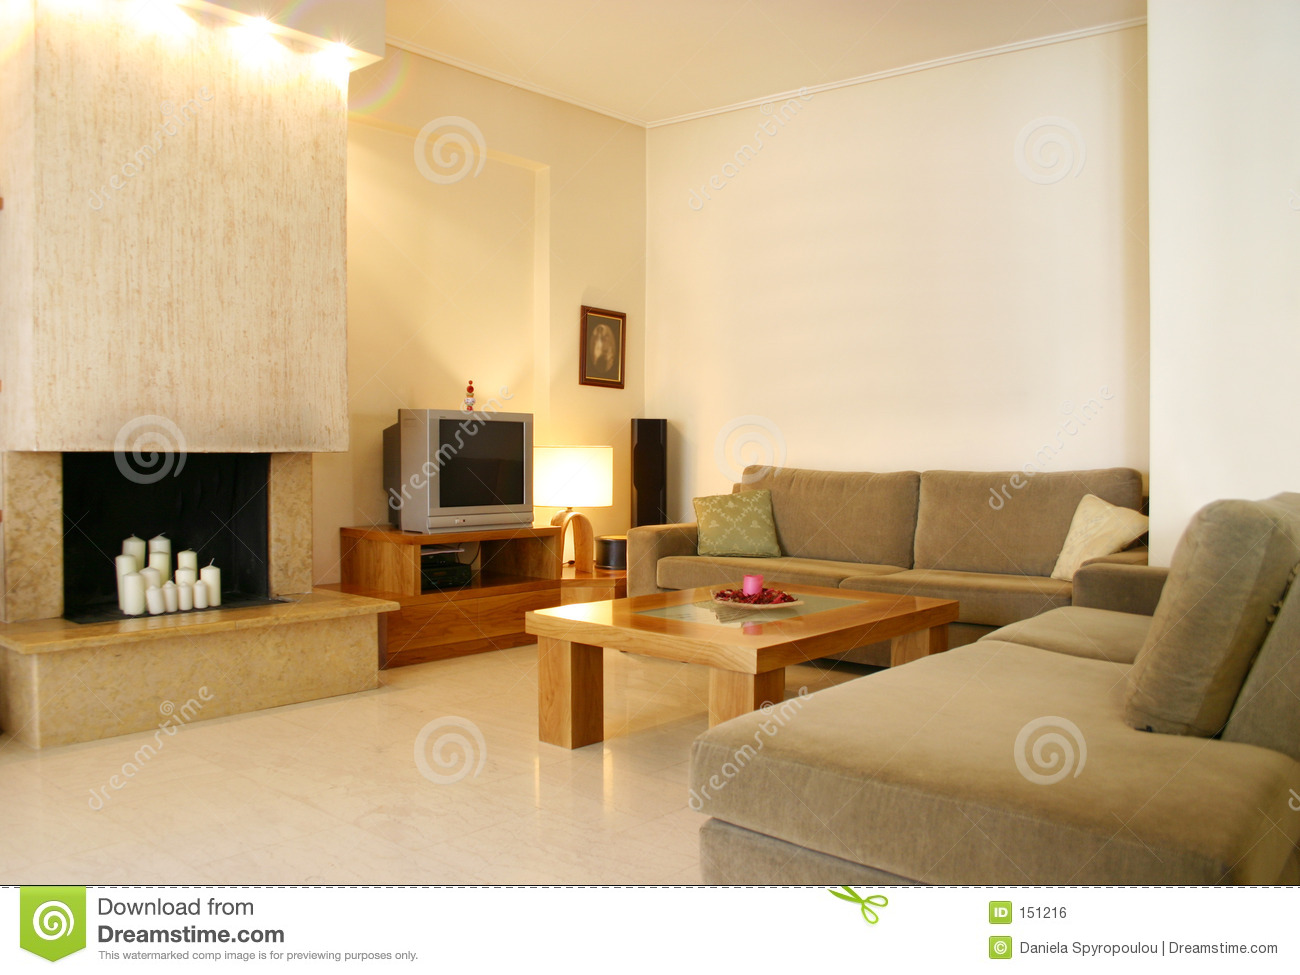 Home Interior Design Royalty Free Stock Image - Image: 151216